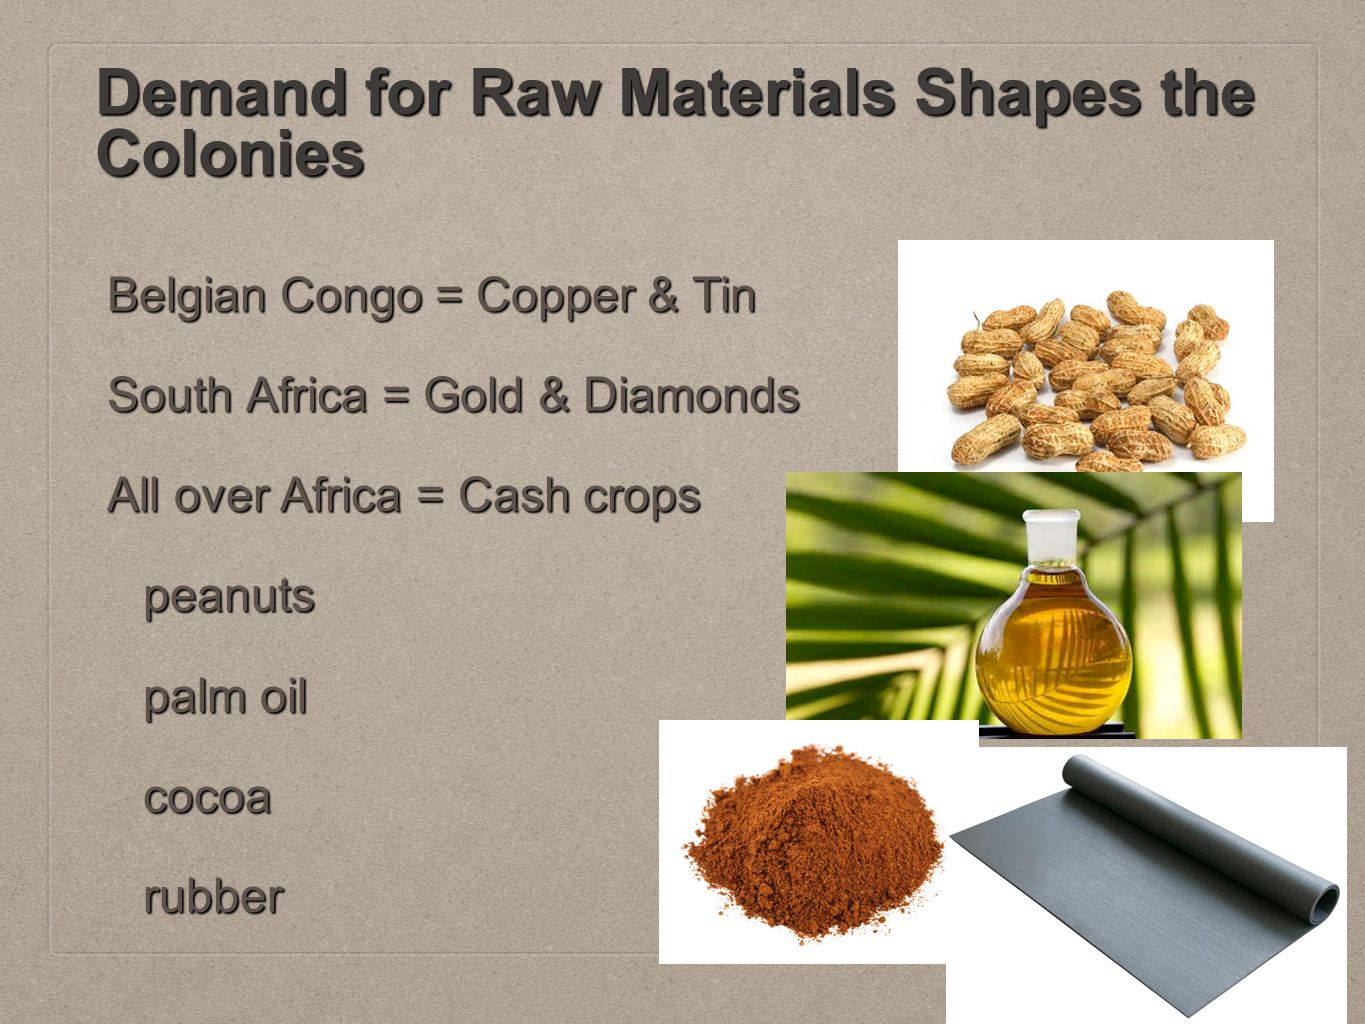 Demand for Raw Materials Shapes the Colonies Belgian Congo = Copper & Tin South Africa = Gold & Diamonds All over Africa = Cash crops peanuts palm oil